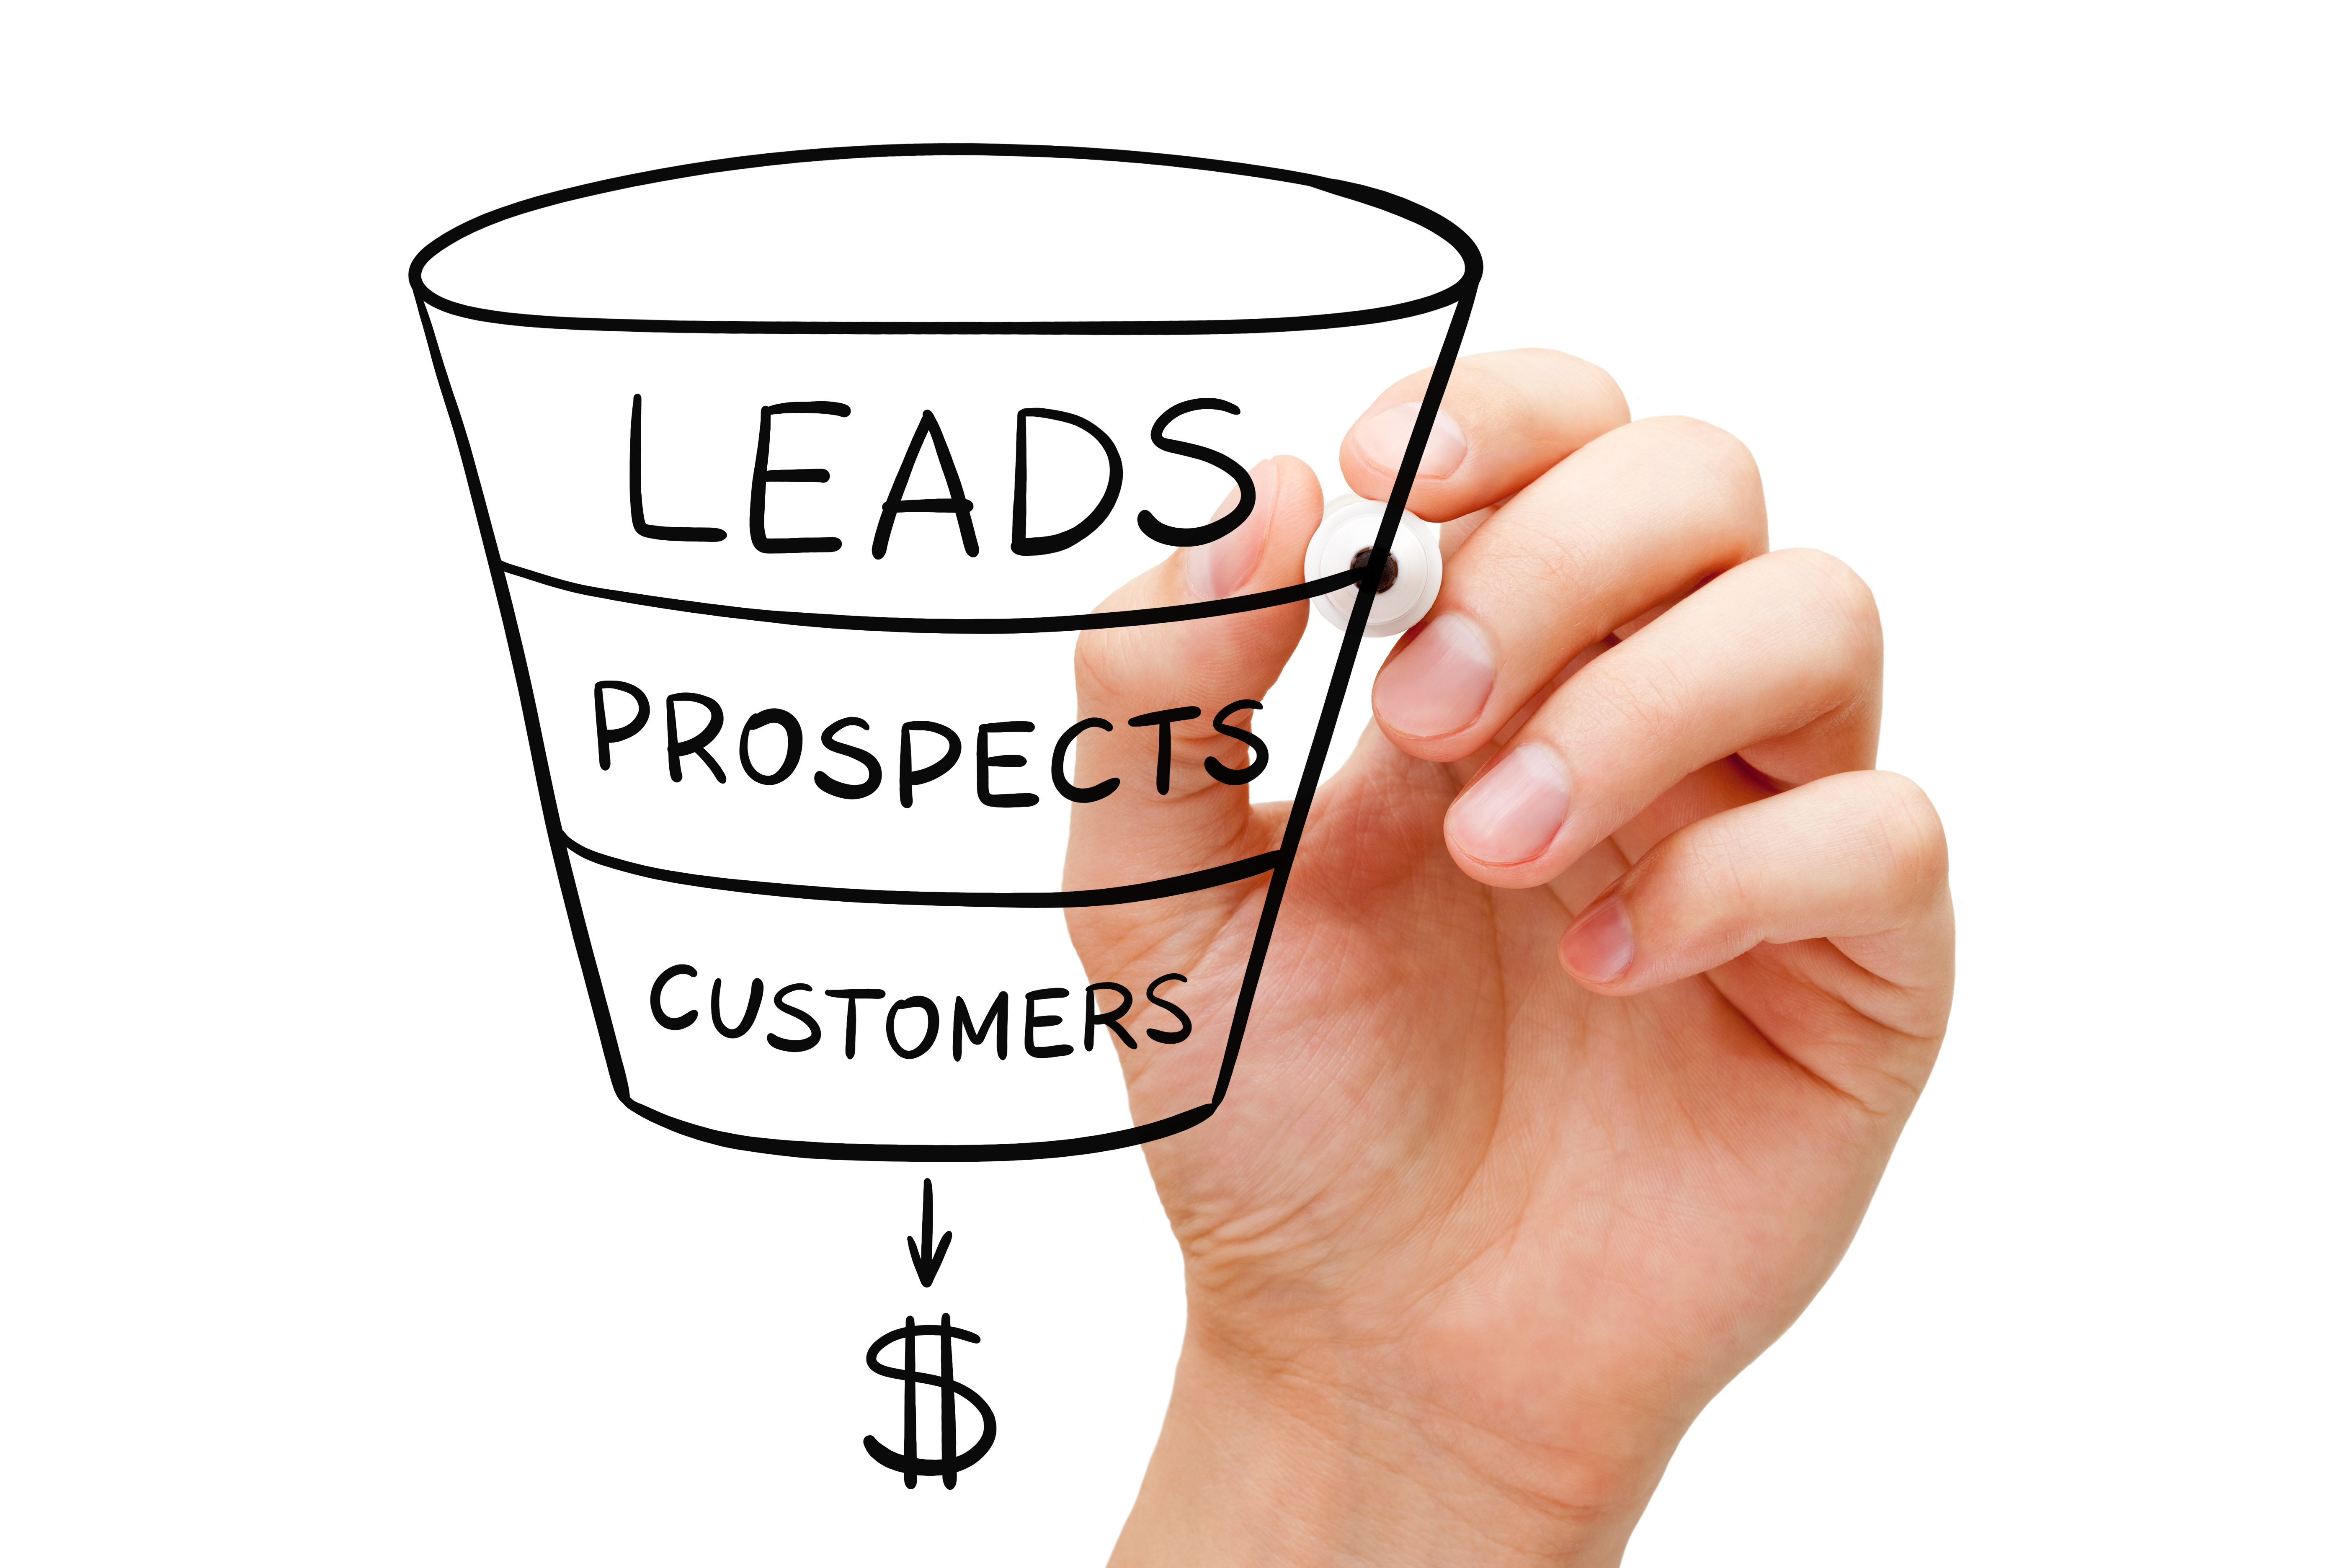 Sales funnel showing how aligned sales and marketing teams can generate better leads